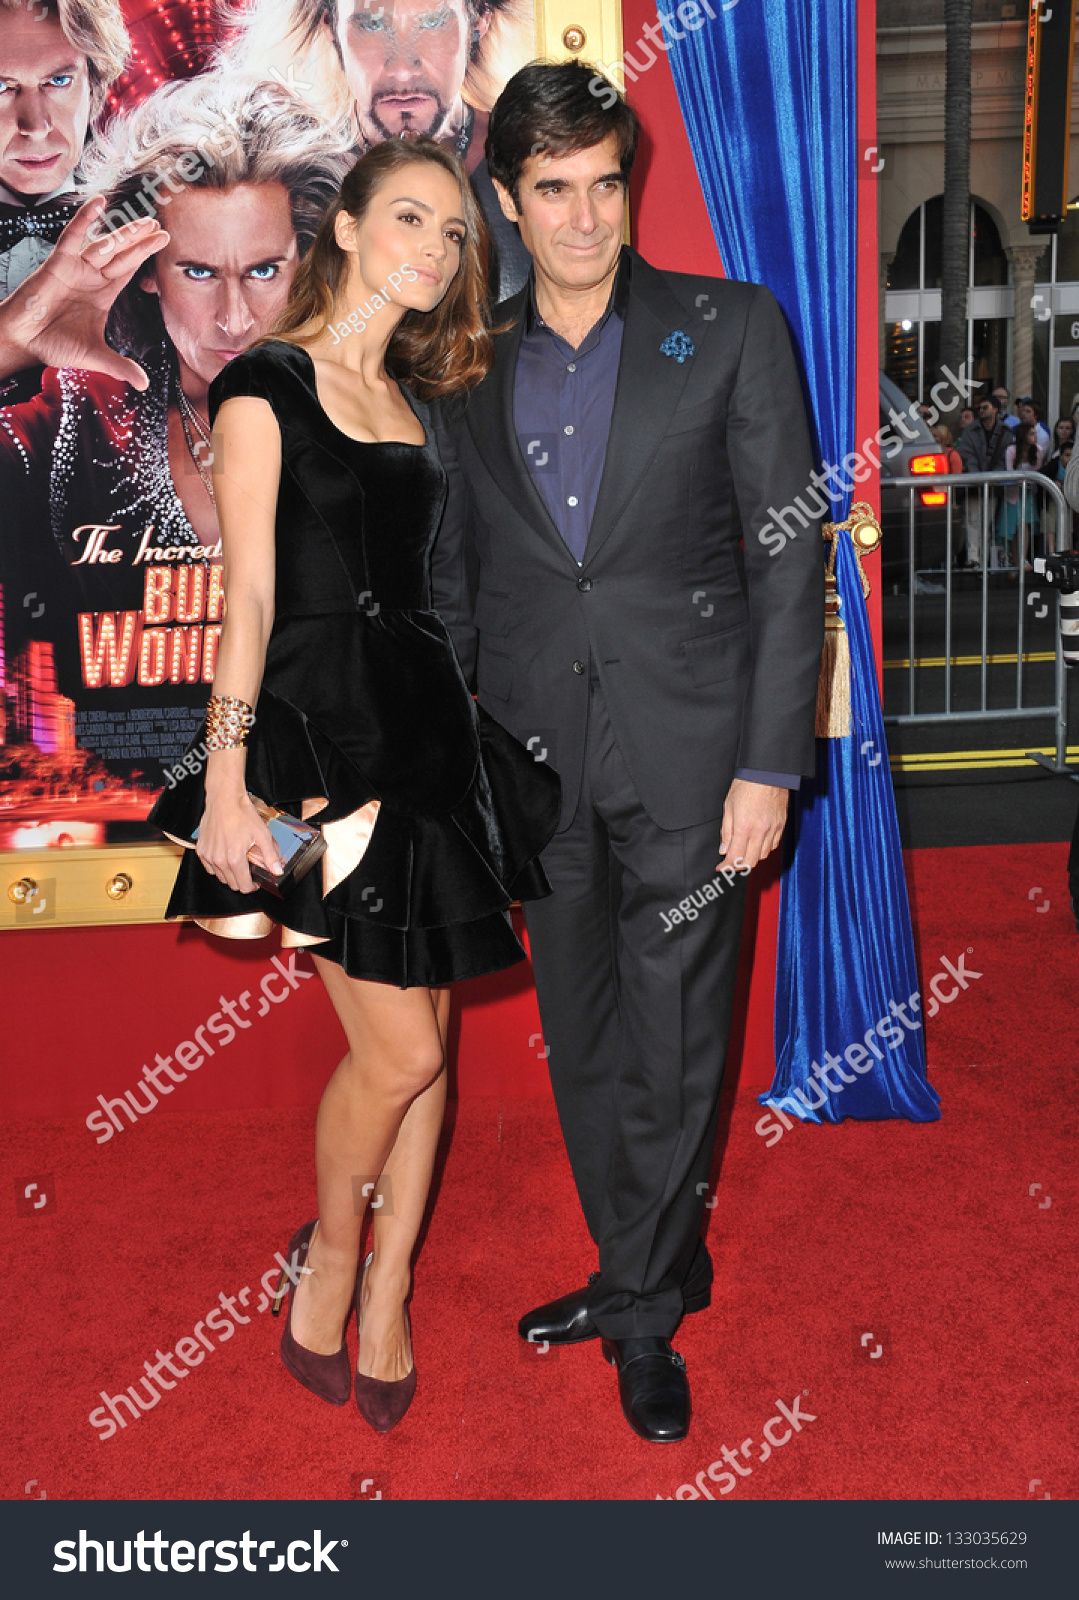 los angeles ca stock photo shutterstock los angeles ca 11 2013 magician david copperfield girlfriend chloe